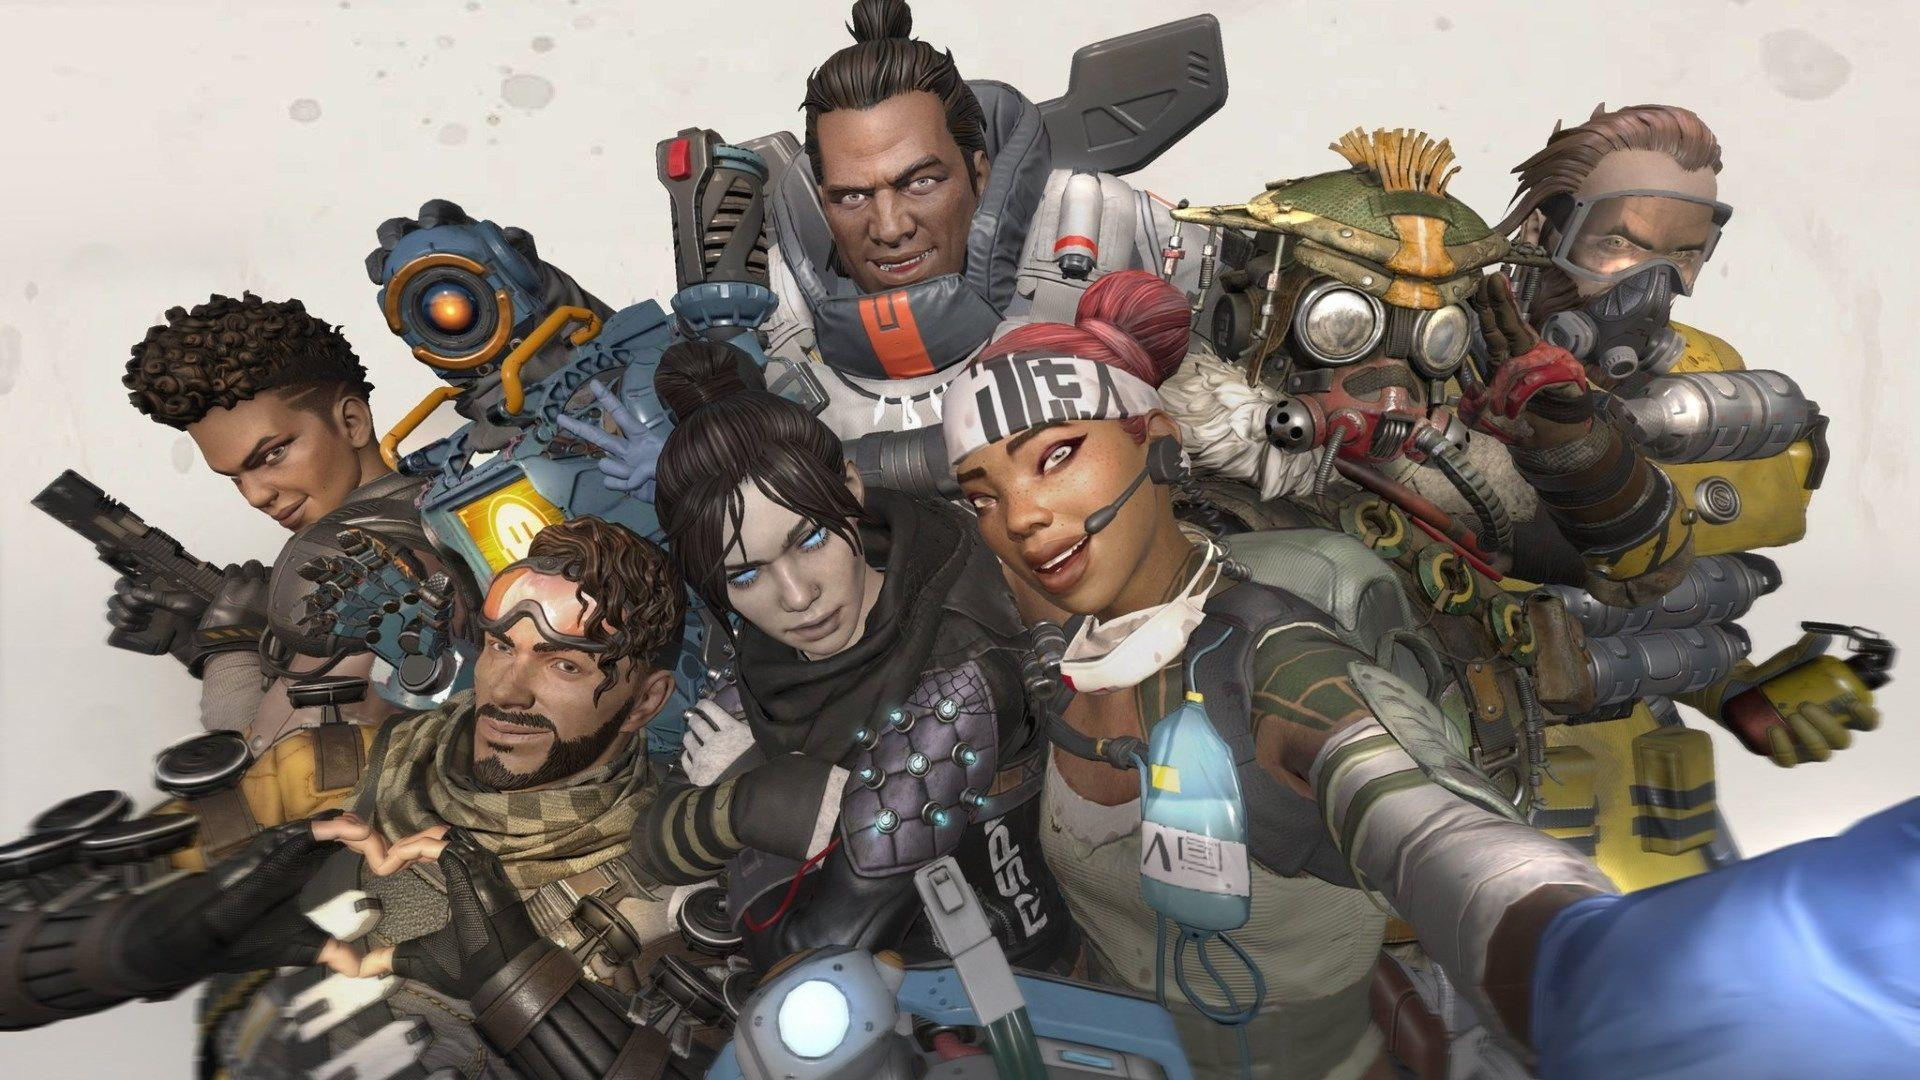 Top 13 Apex Legends Wallpapers in Full HD and 4K